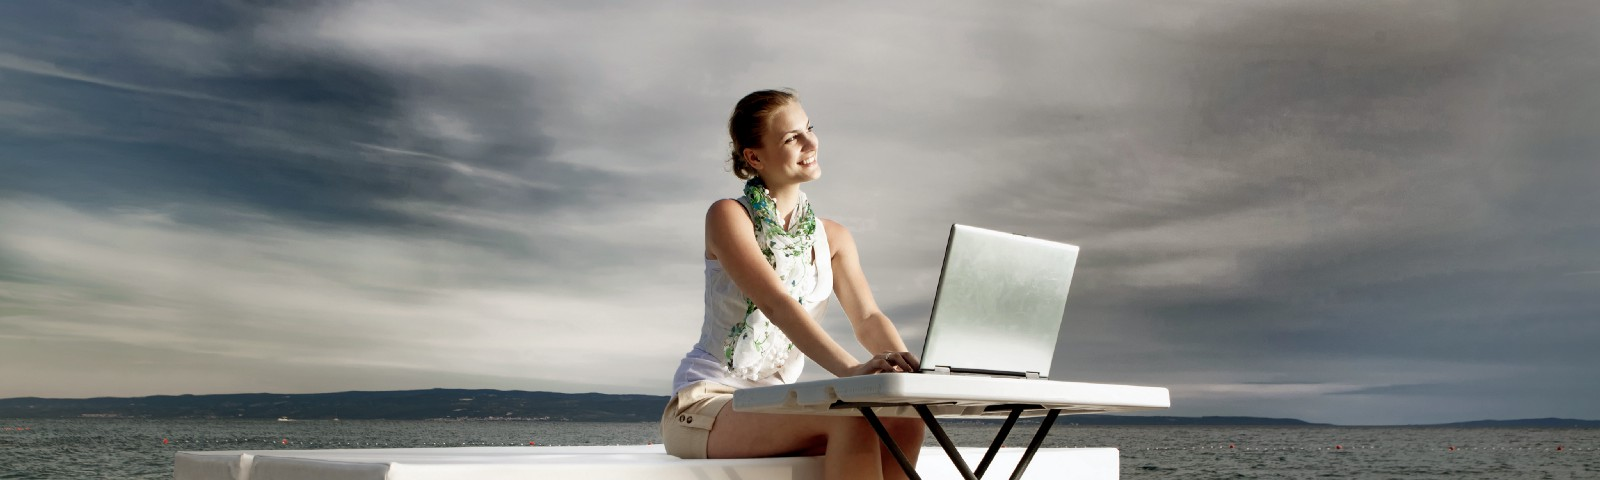 A girl on a waterside deck sending a thank you email after her interview to secure the job.